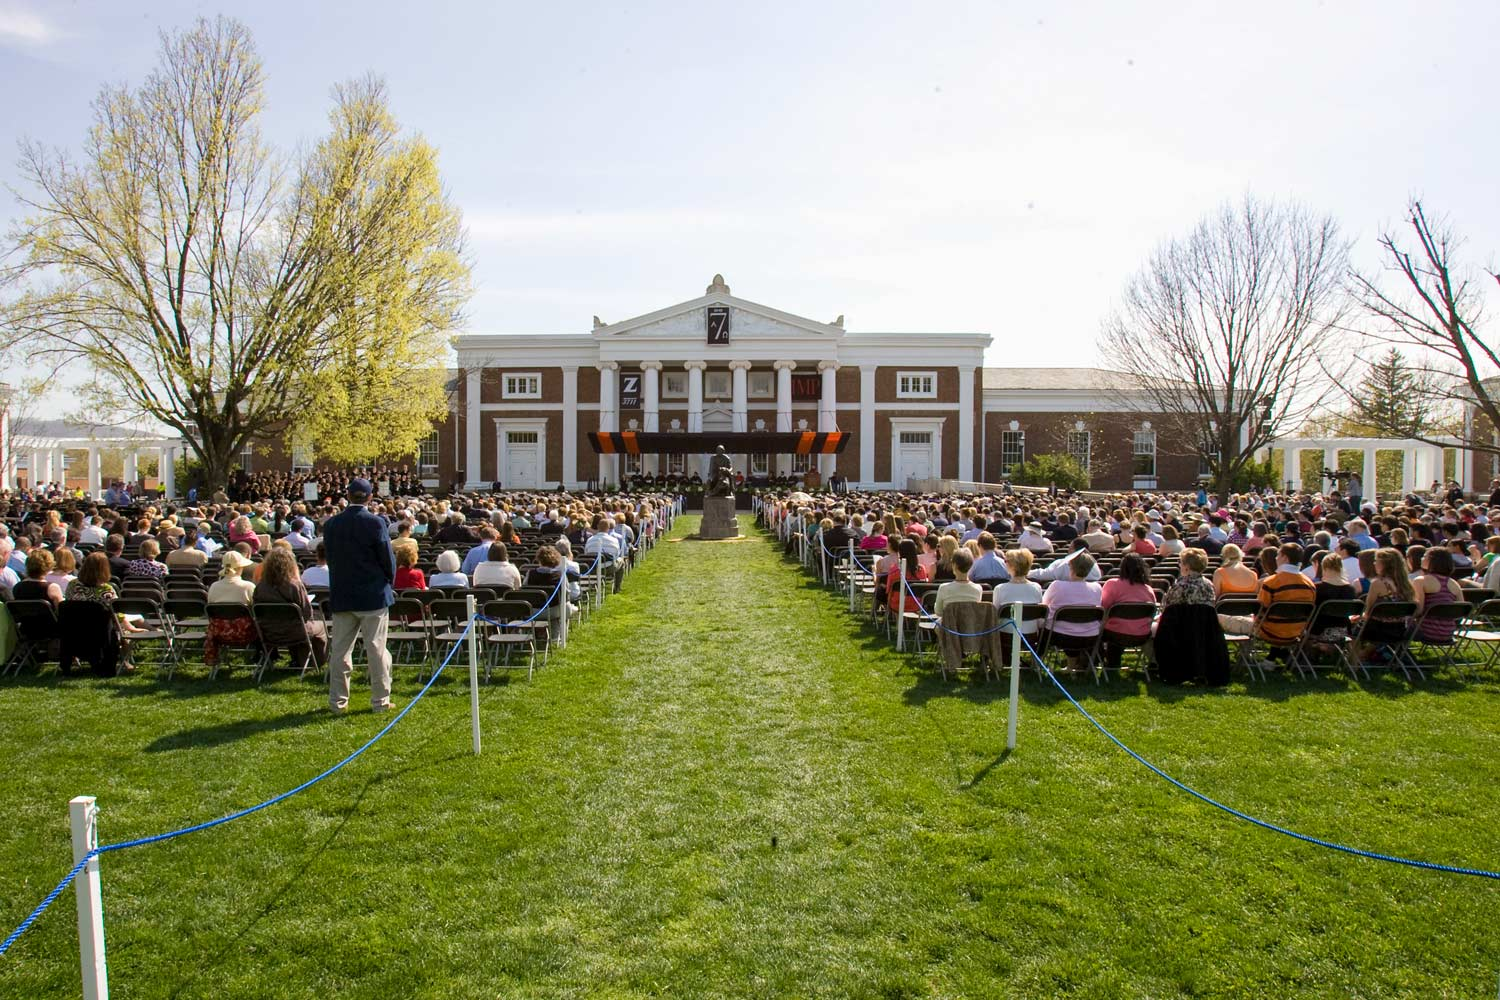 CAPTION: Ryan's predecessor, President Emerita Teresa A. Sullivan, enjoyed a sunny inauguration ceremony on the Lawn in 2011.